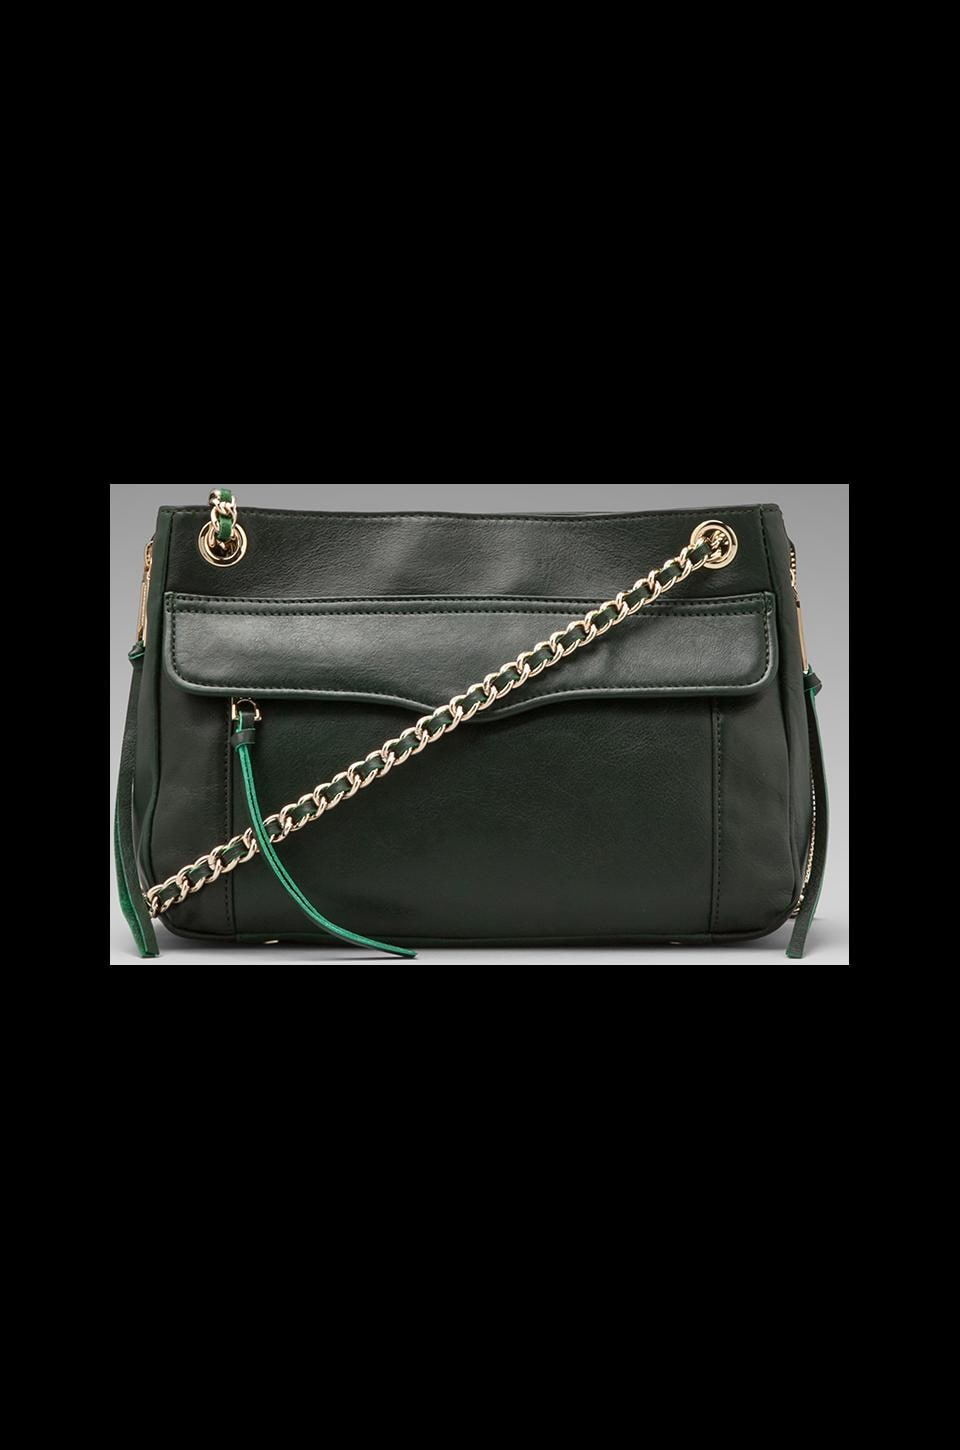 Rebecca Minkoff Swing Shoulder Bag in Hunter